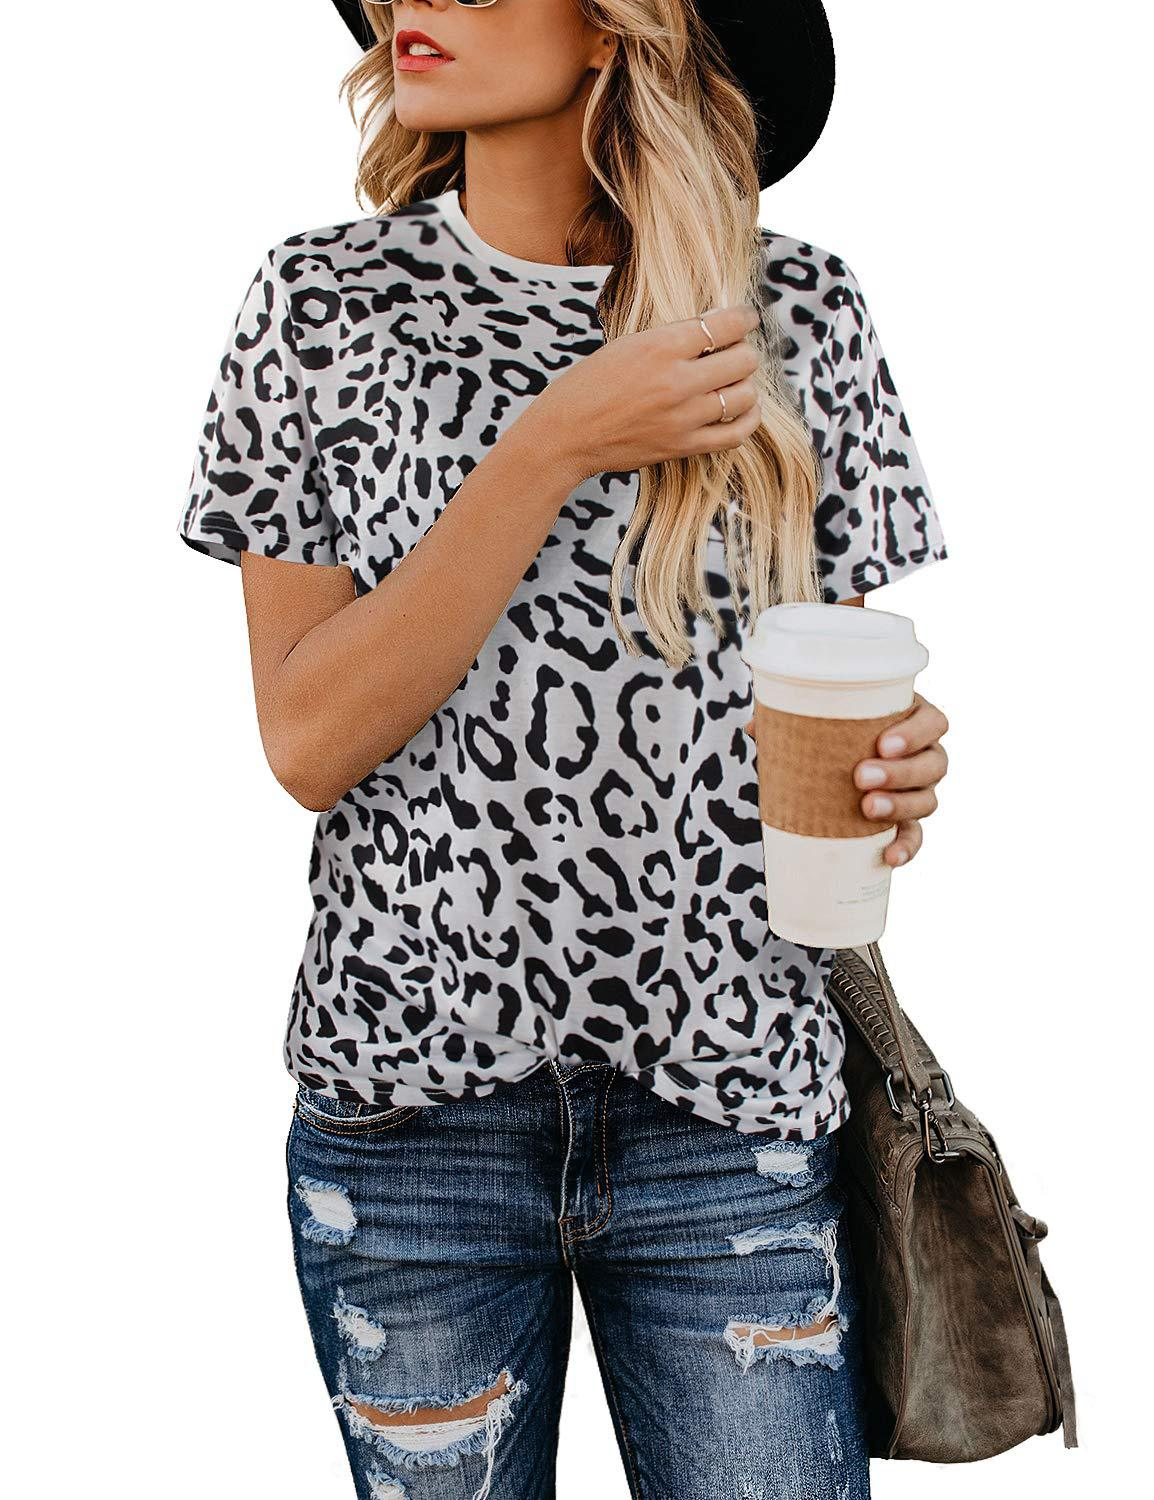 T shirt female short sleeved Summer new women 39 s short sleeved leopard women 39 s Tshirt top Casual Streetwear in T Shirts from Women 39 s Clothing